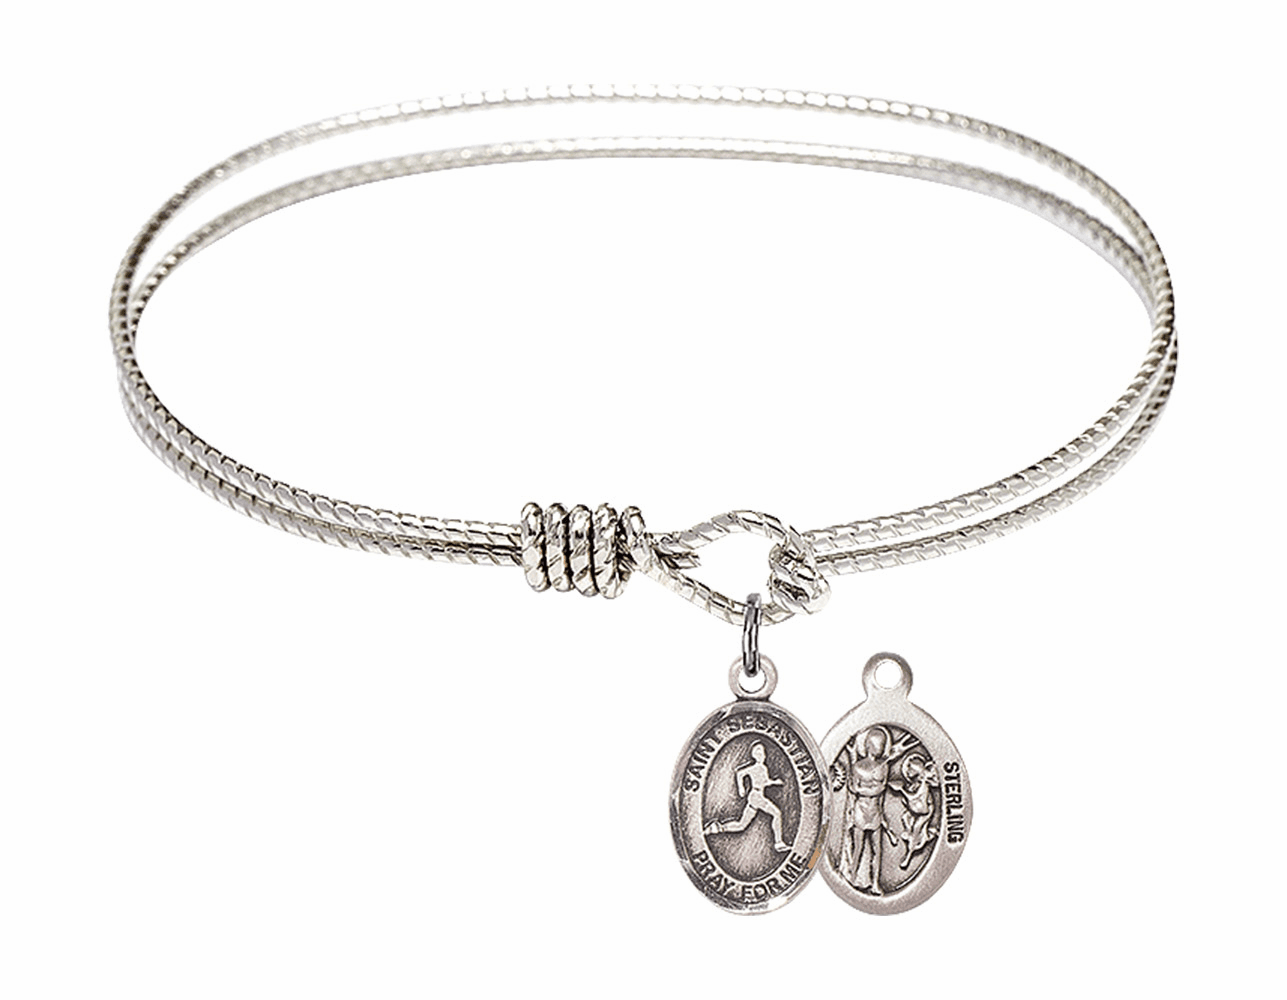 Twist Round Eye Hook St Sebastian Track and Field Bangle Charm Bracelet by Bliss